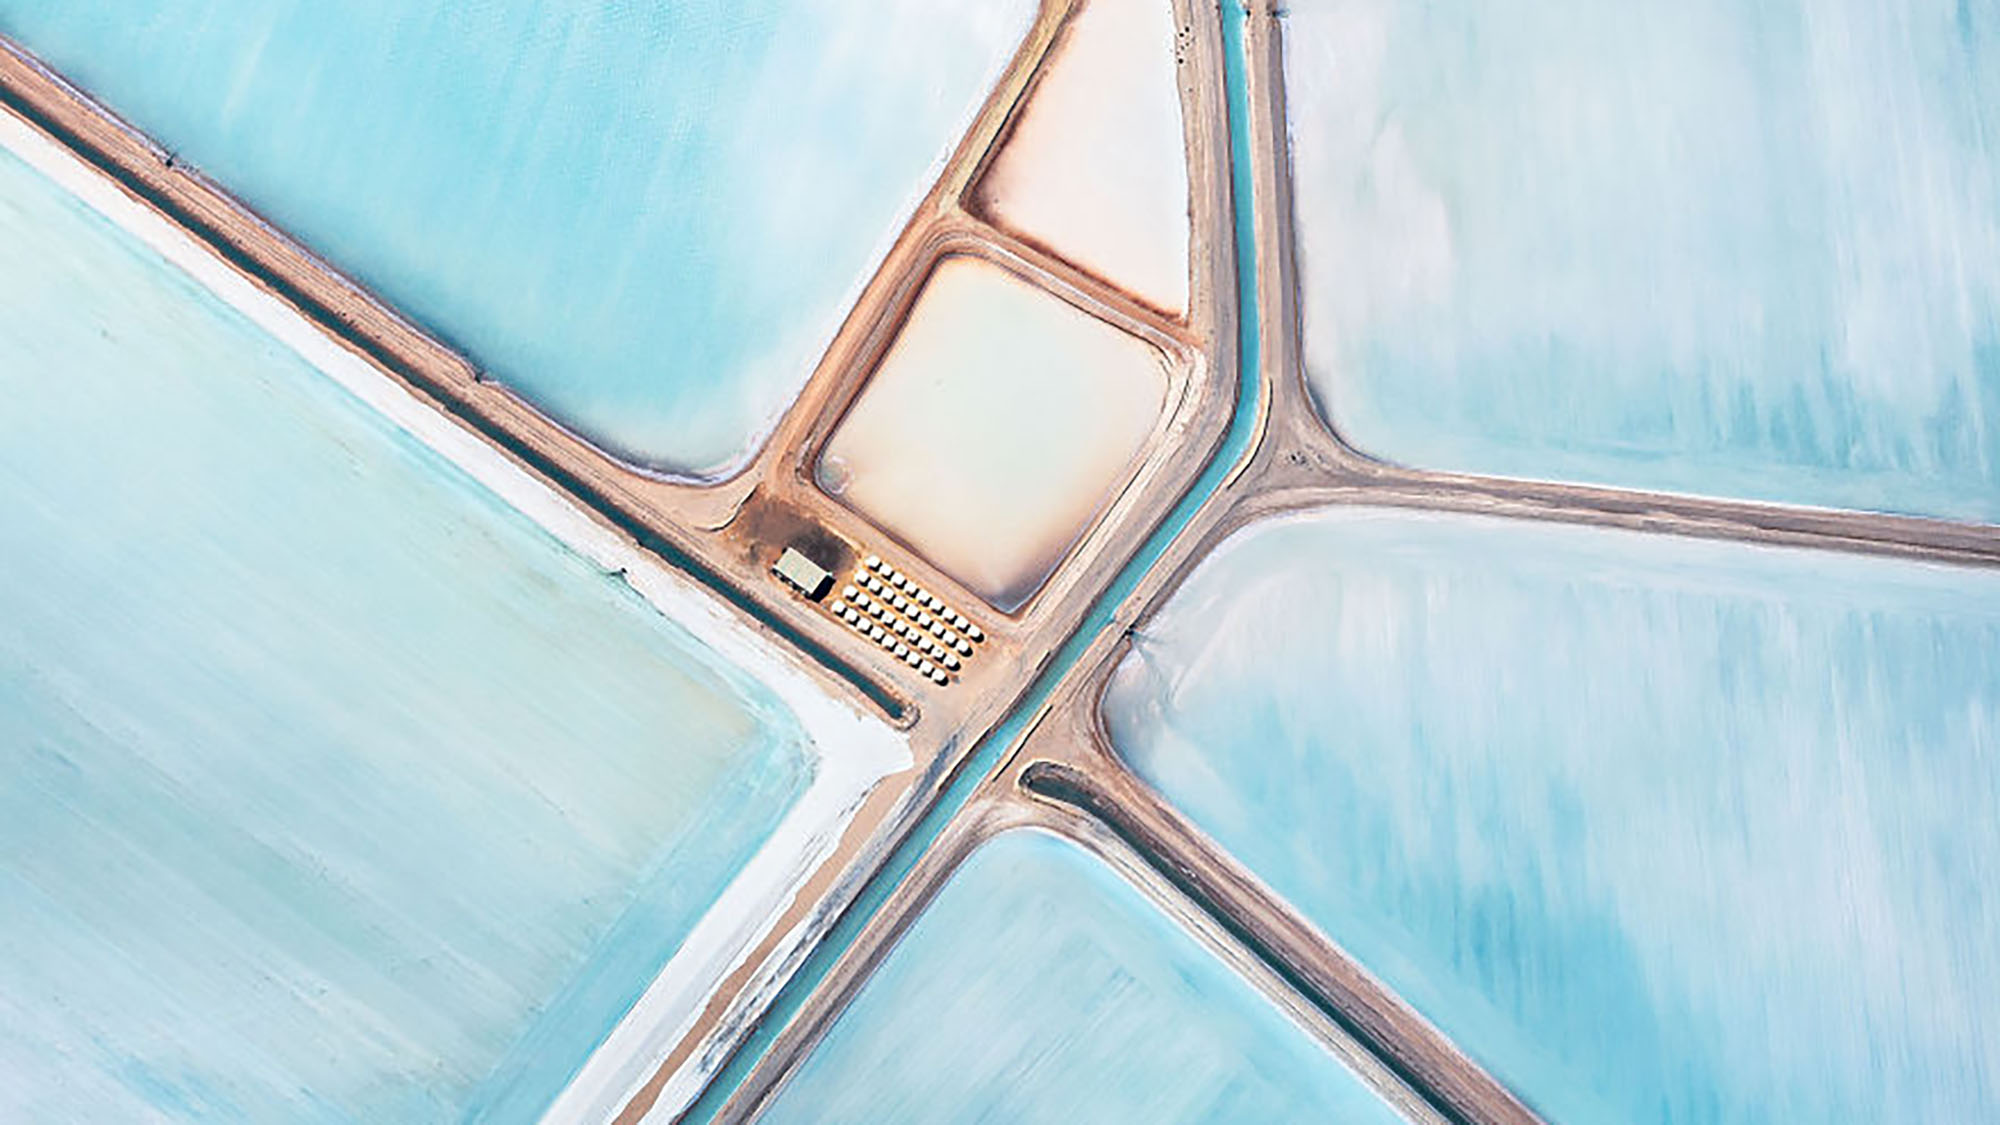 In pictures: Australia's blue salt fields from above